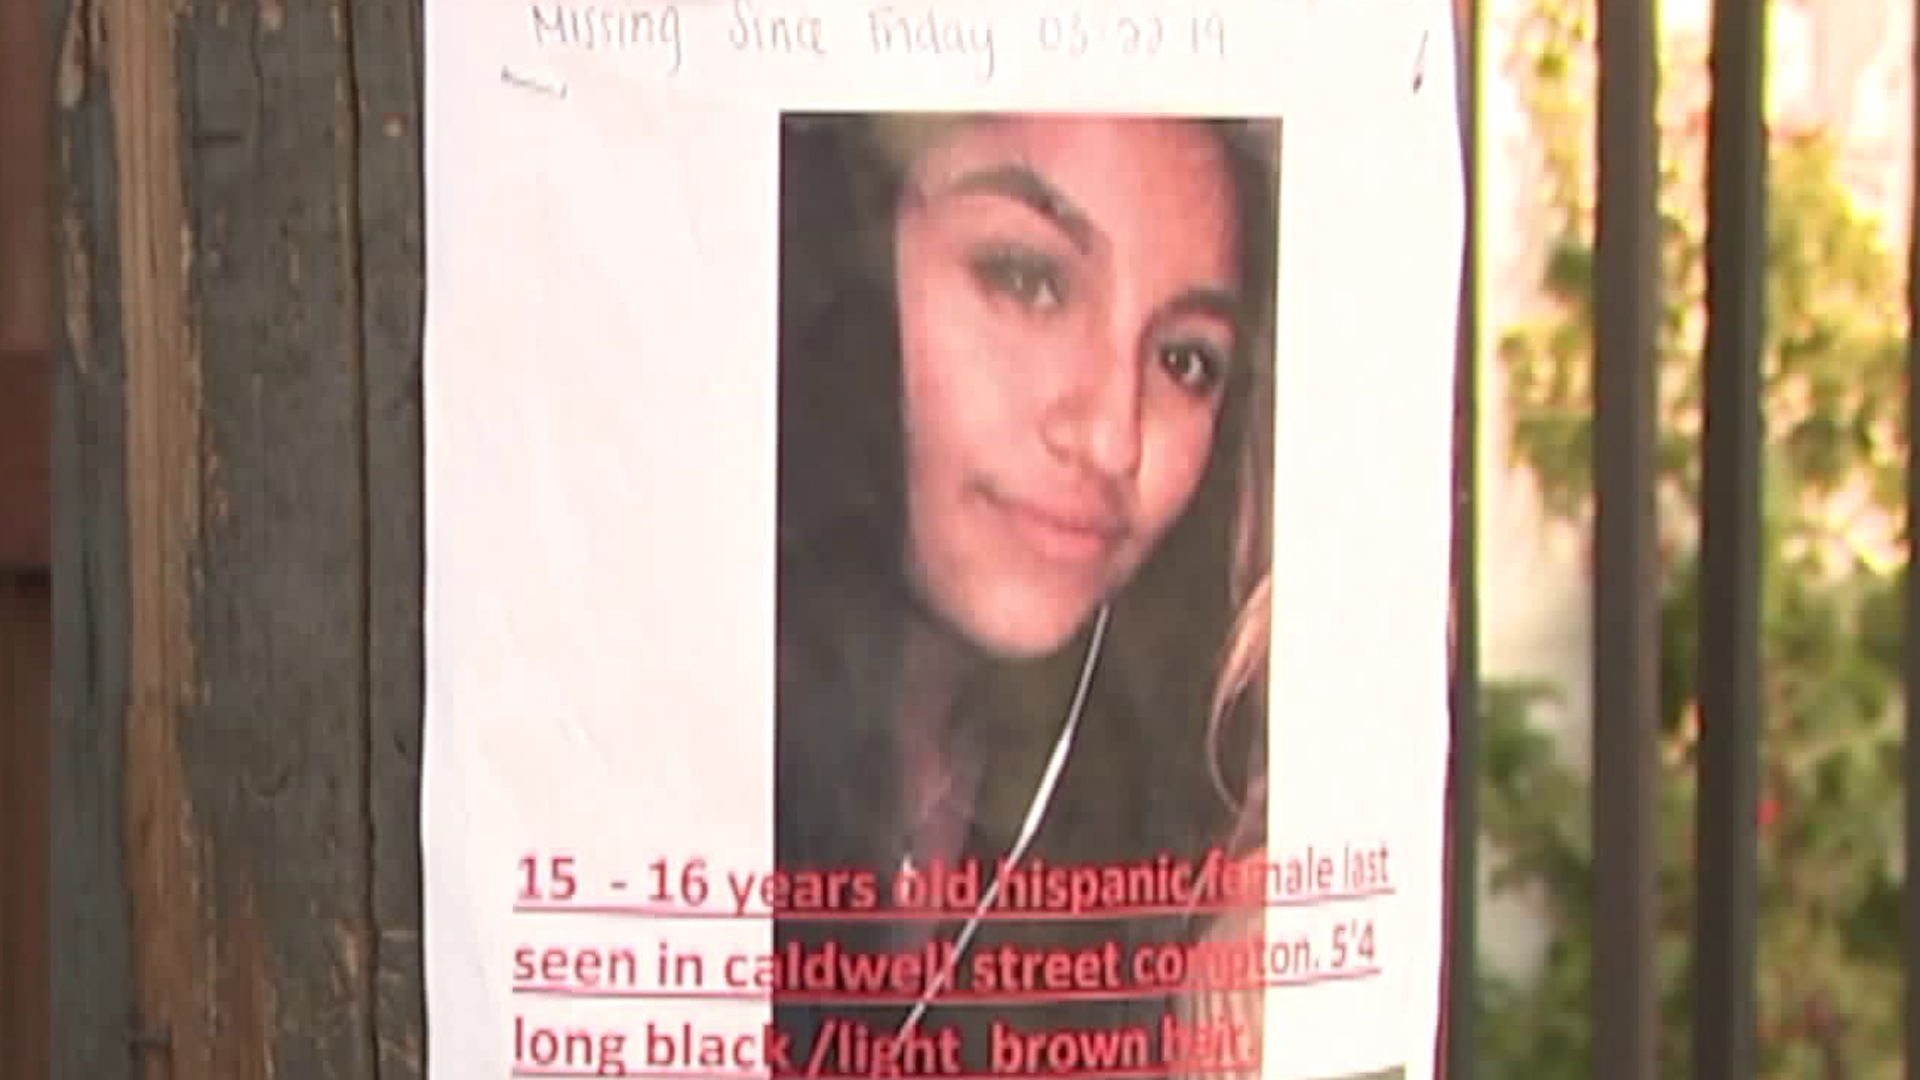 Samantha Busto is seen in a missing person's poster in March 2019. (Credit: KTLA)